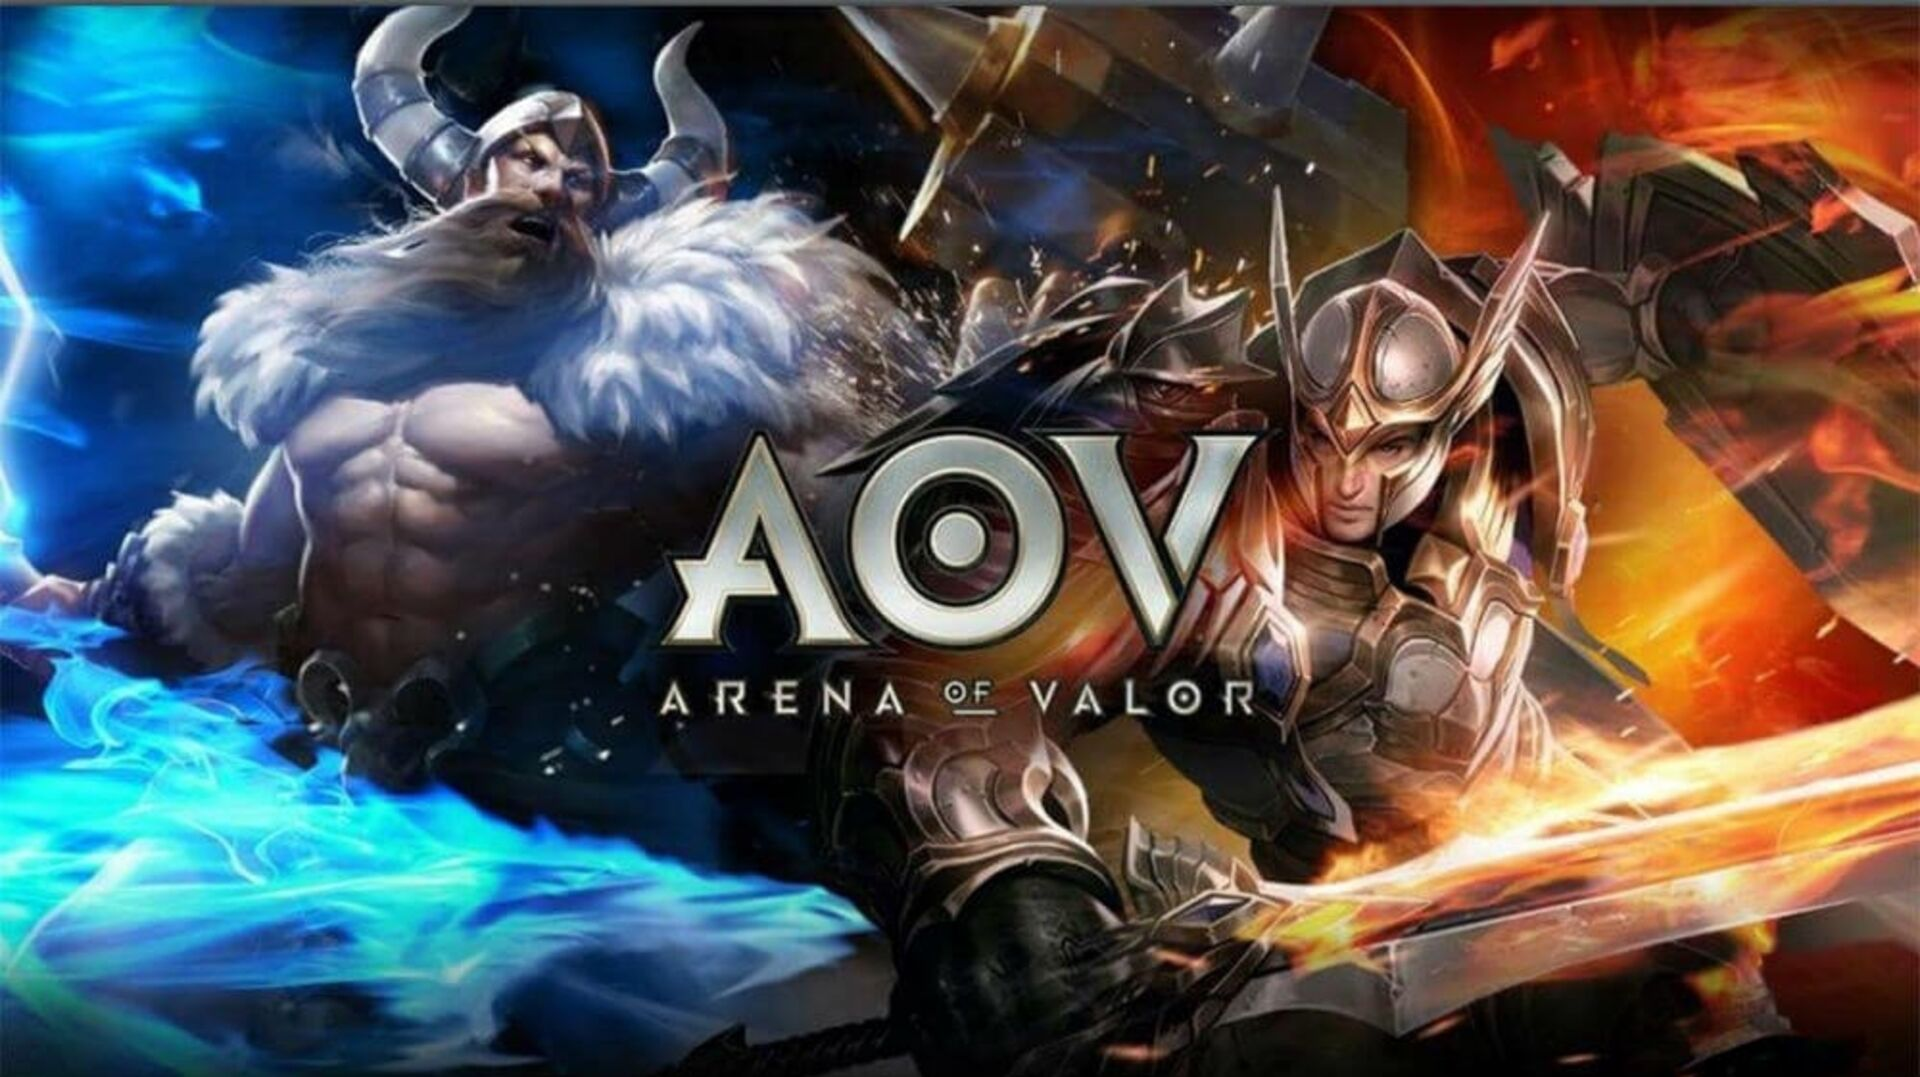 Arena of Valor is the biggest game you've never heard of - and it's